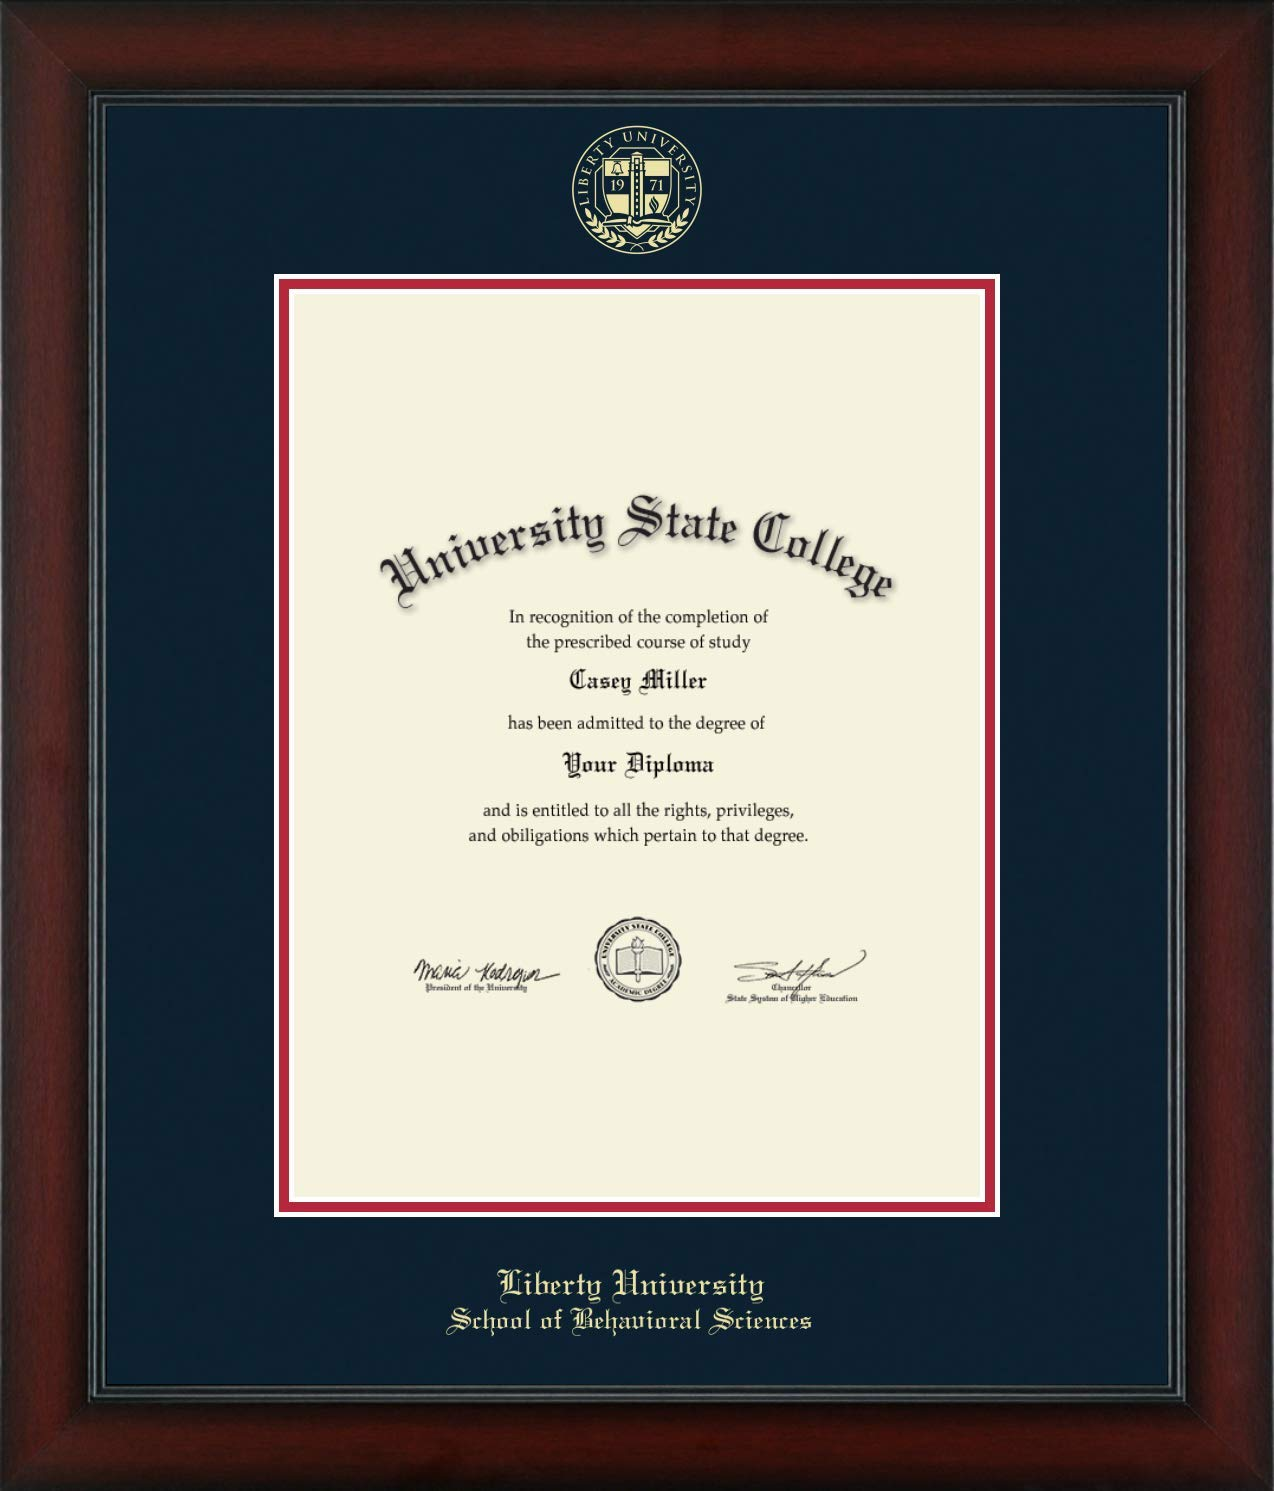 Liberty University School of Behavioral Sciences - Officially Licensed - Gold Embossed Diploma Frame - Diploma Size 13'' x 17''